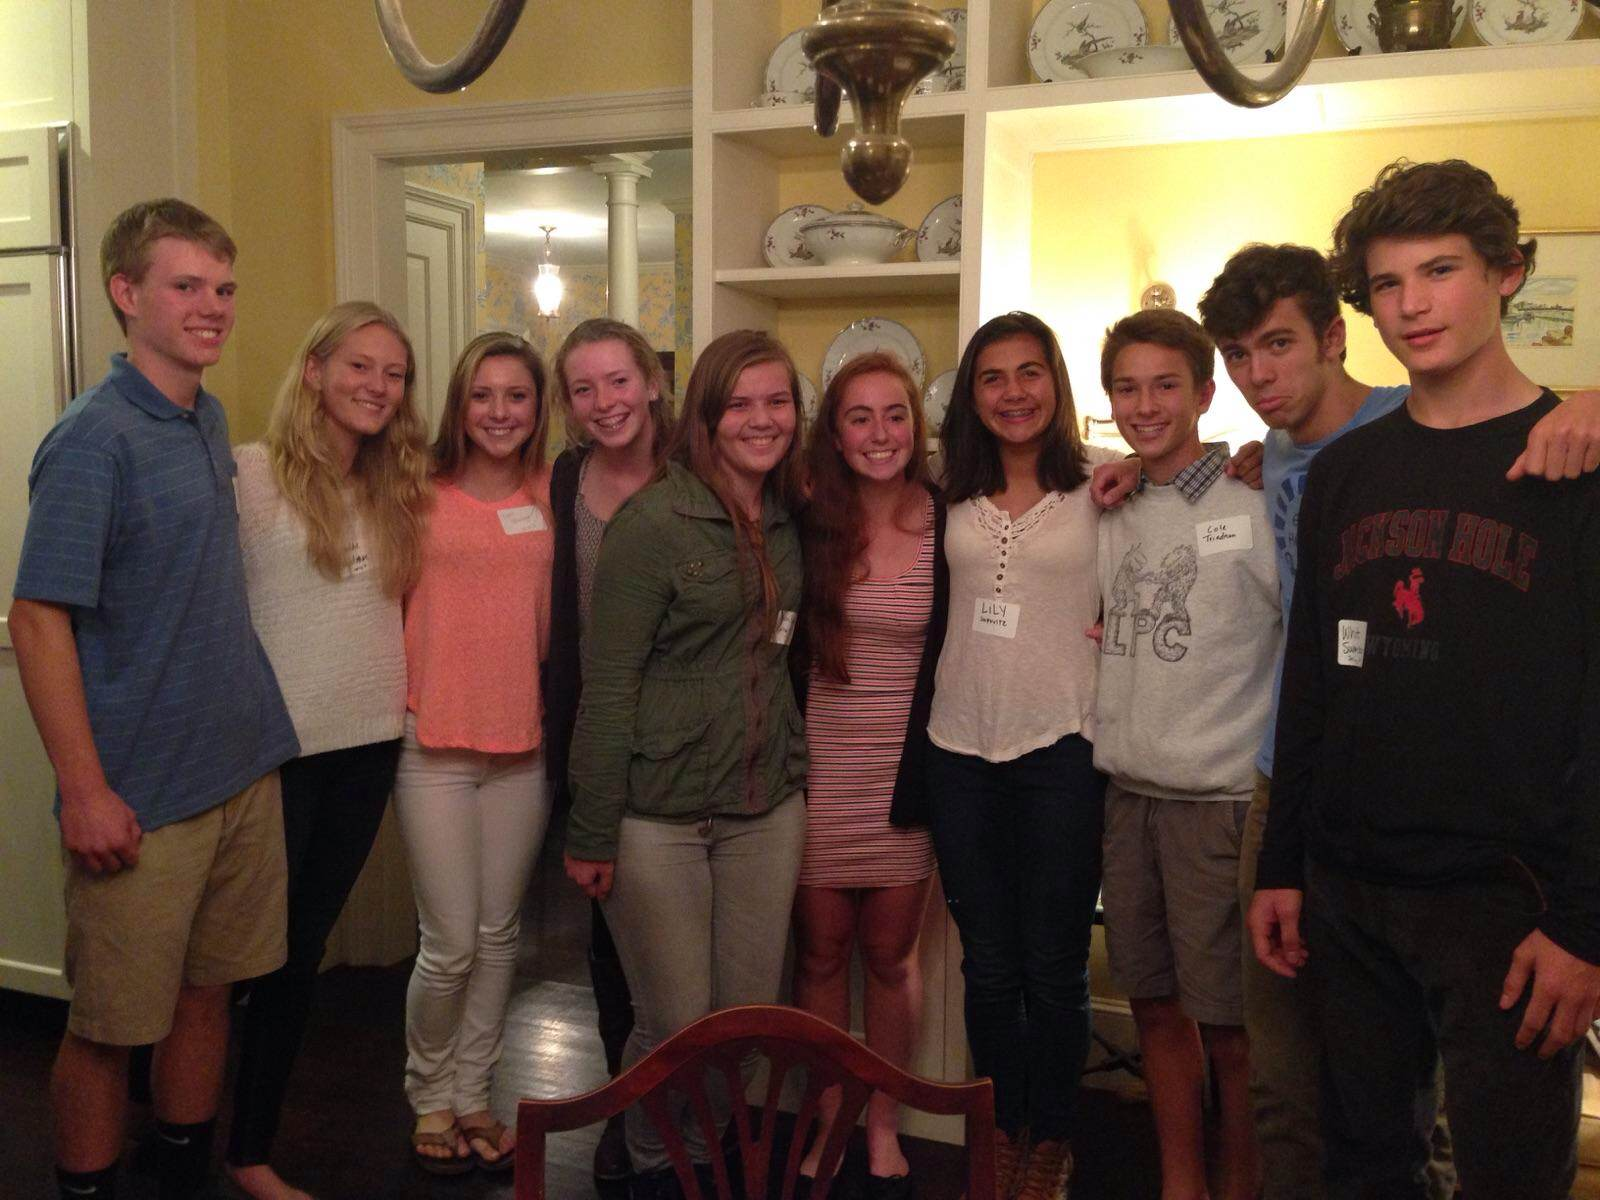 Ten students from the Boston area who are headed to Eleuthera for the Spring 2015 semester gathered at the Boston reception.